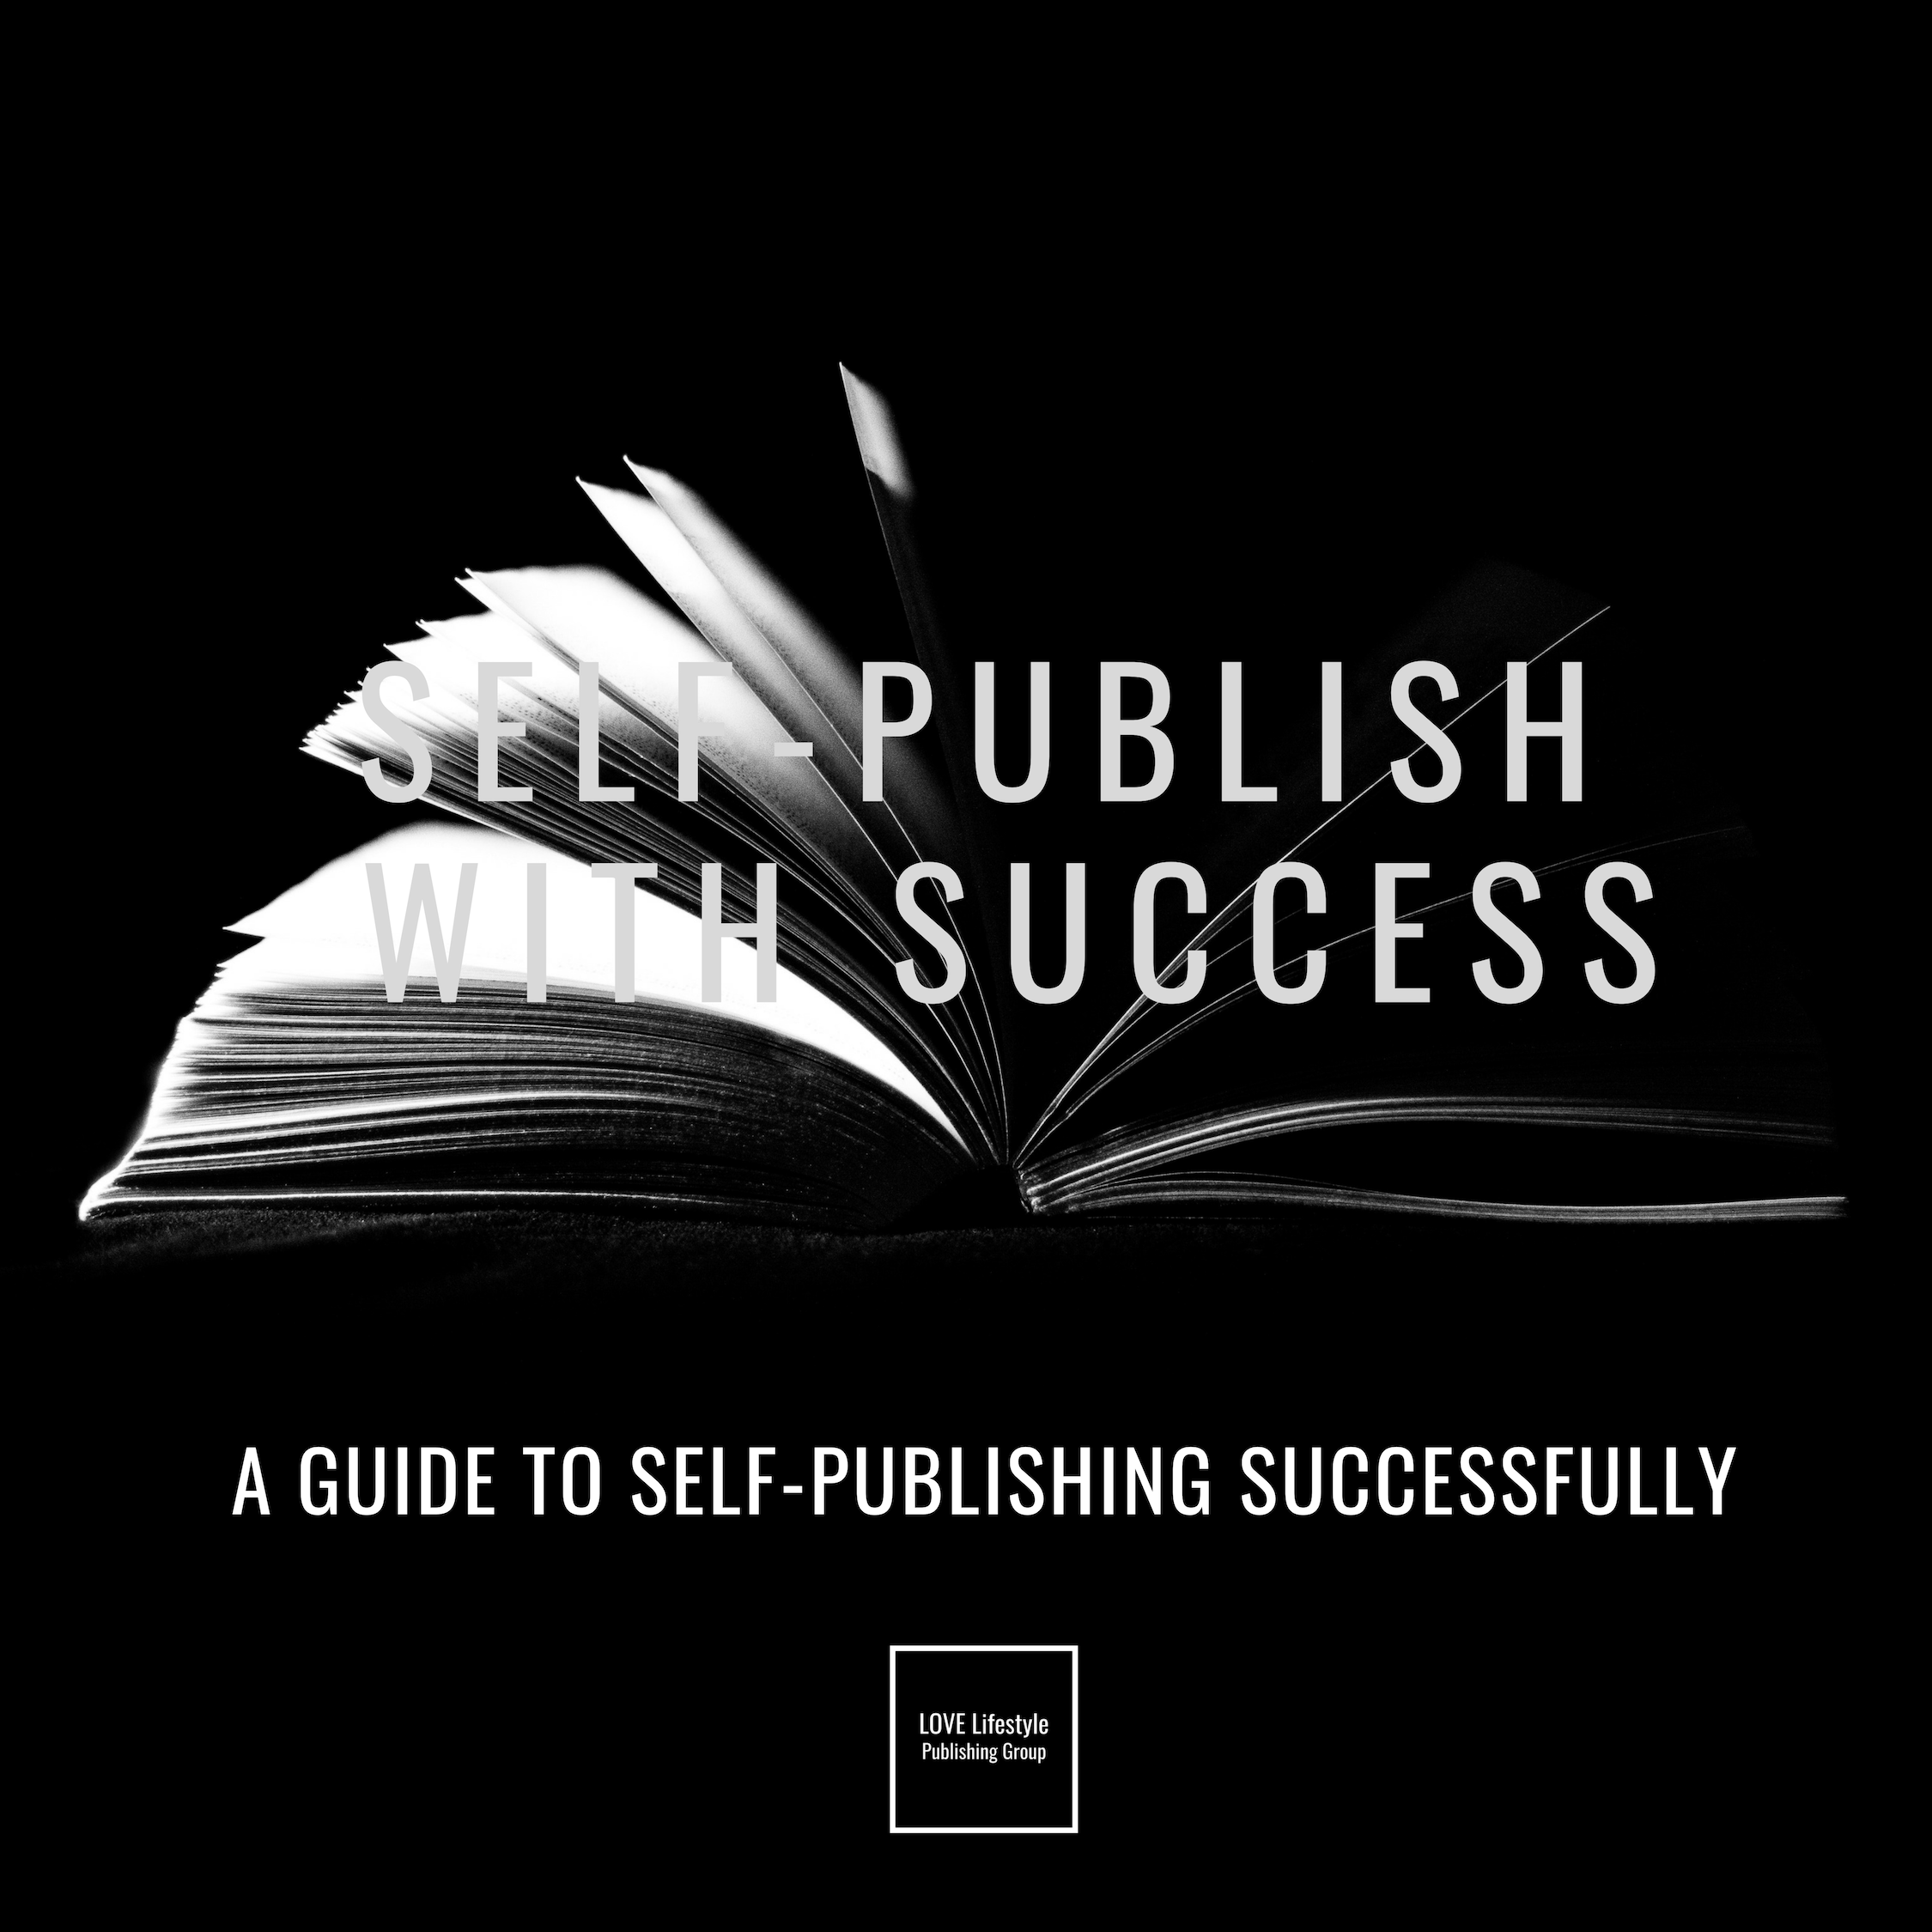 Fill out the form below to claim your free guide now. -